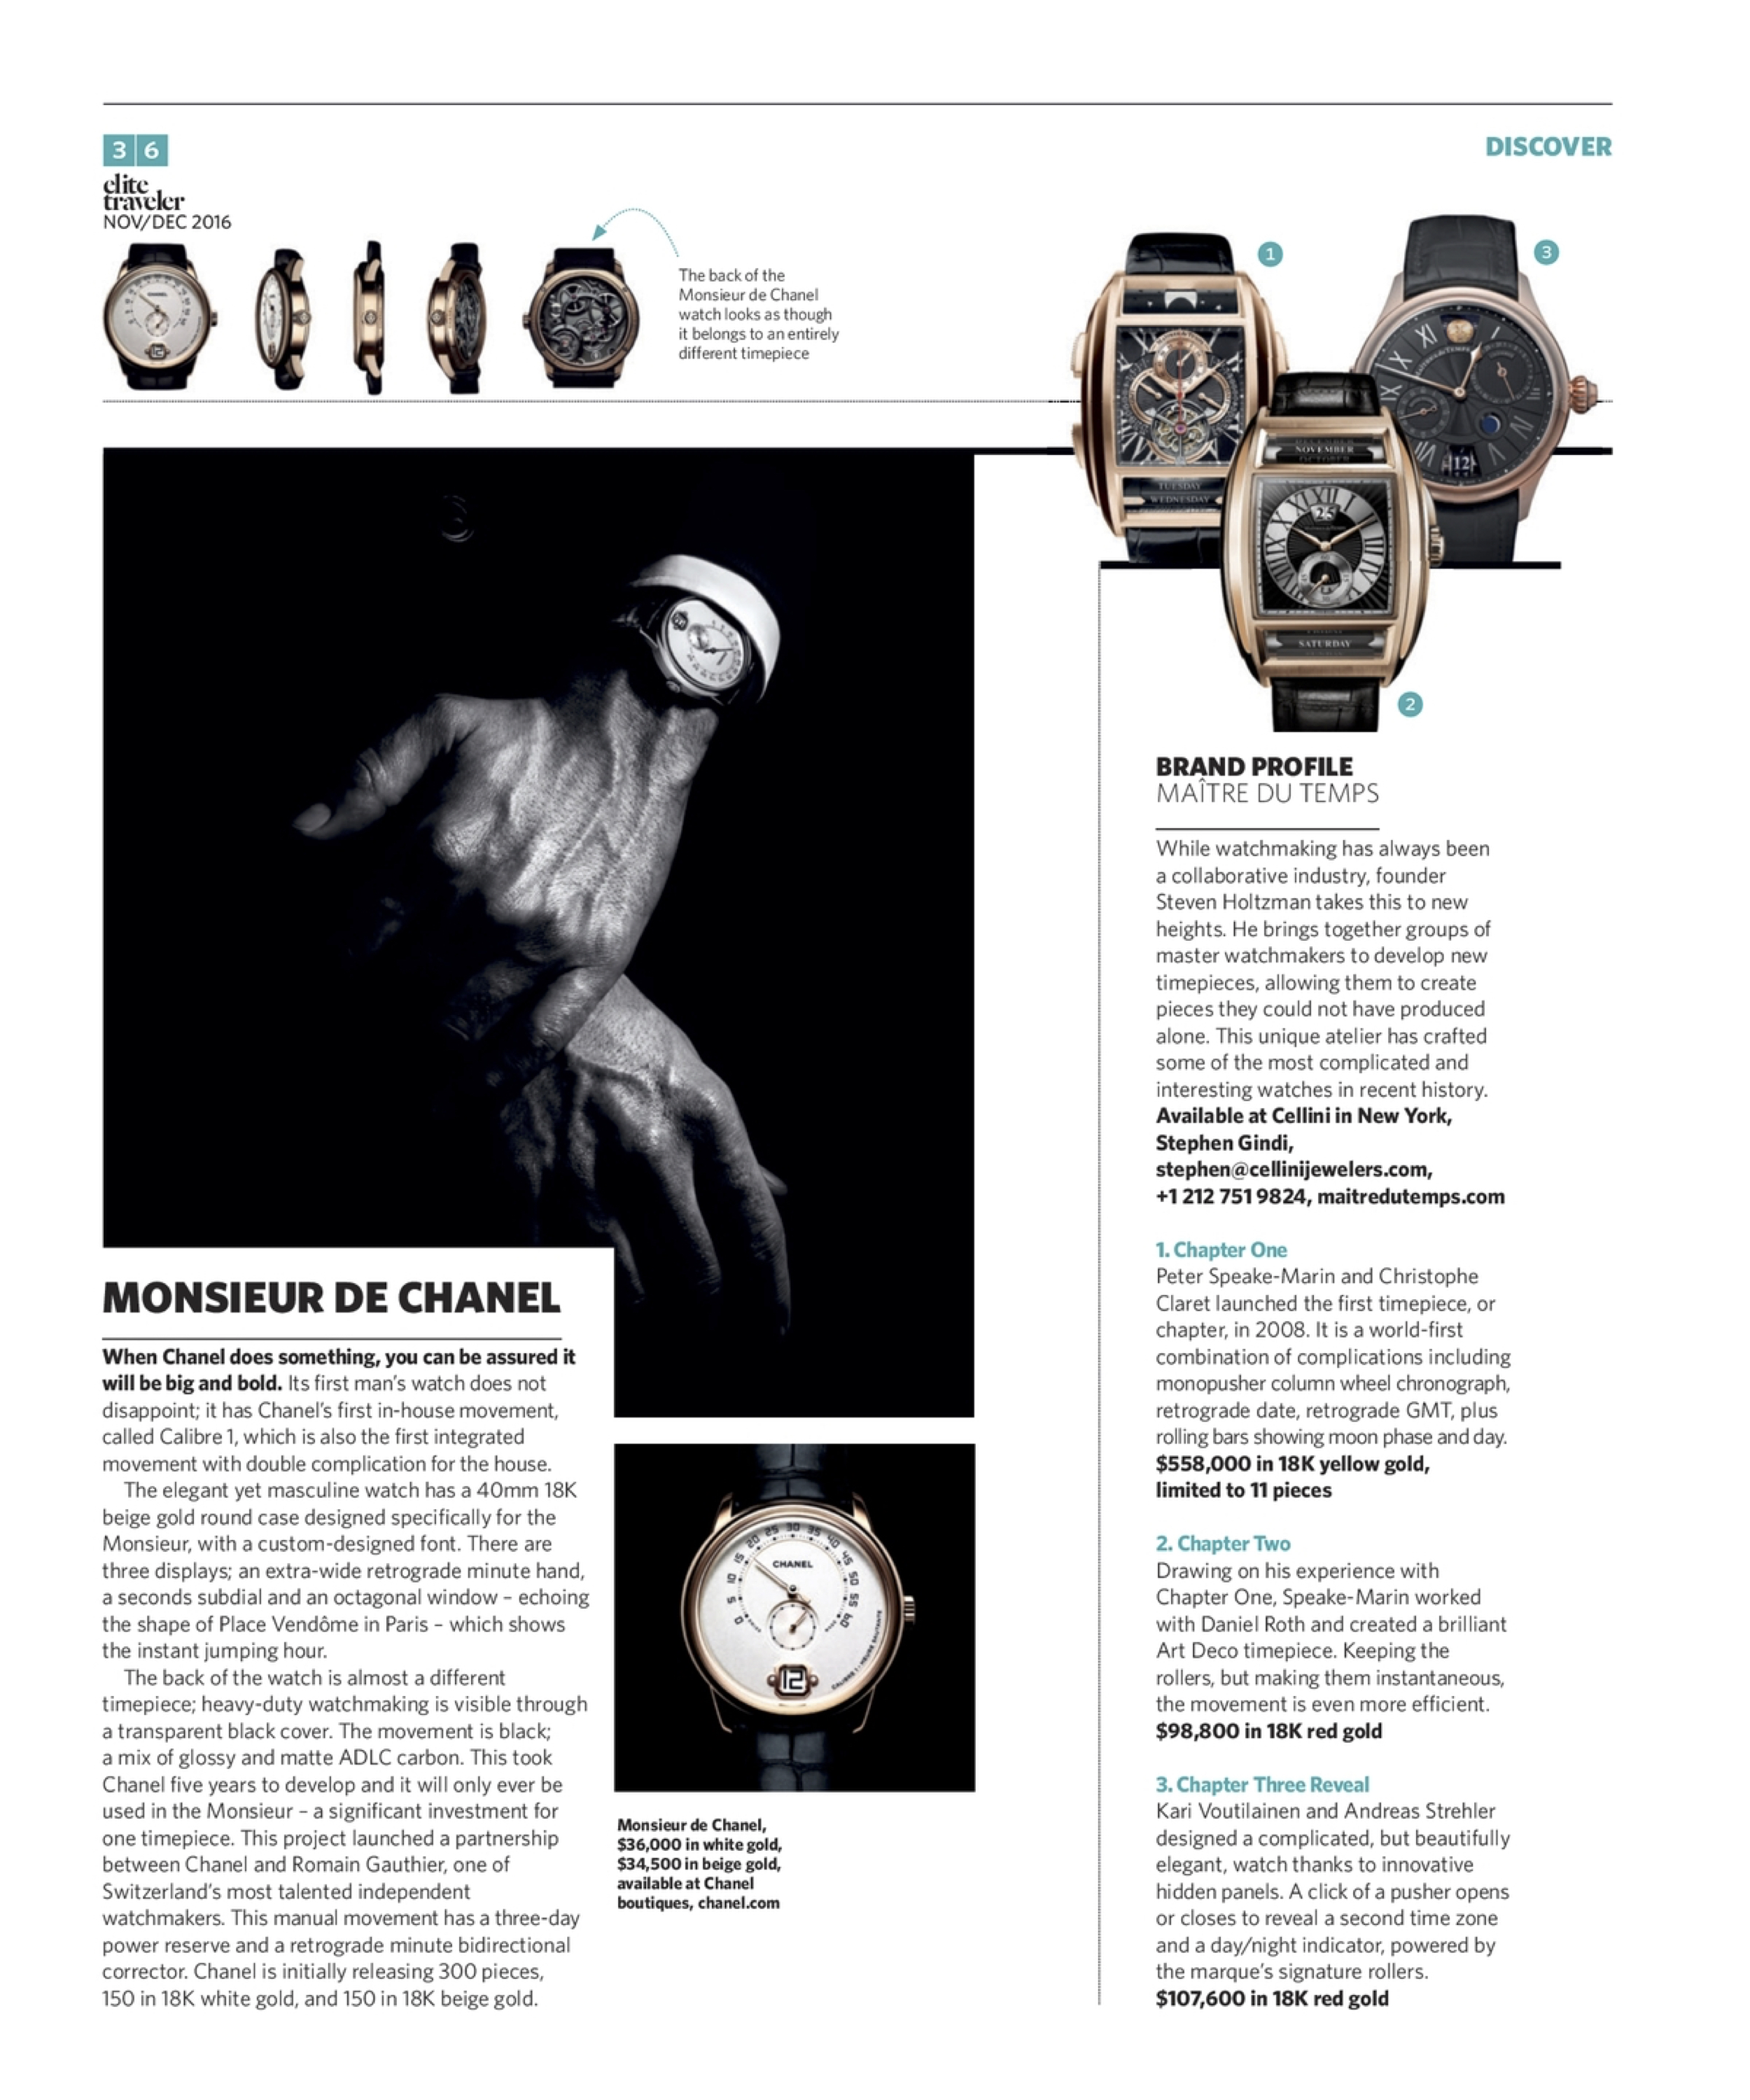 November/December 2016 | Monsieur de Chanel Launch, Maître du Temps Profile